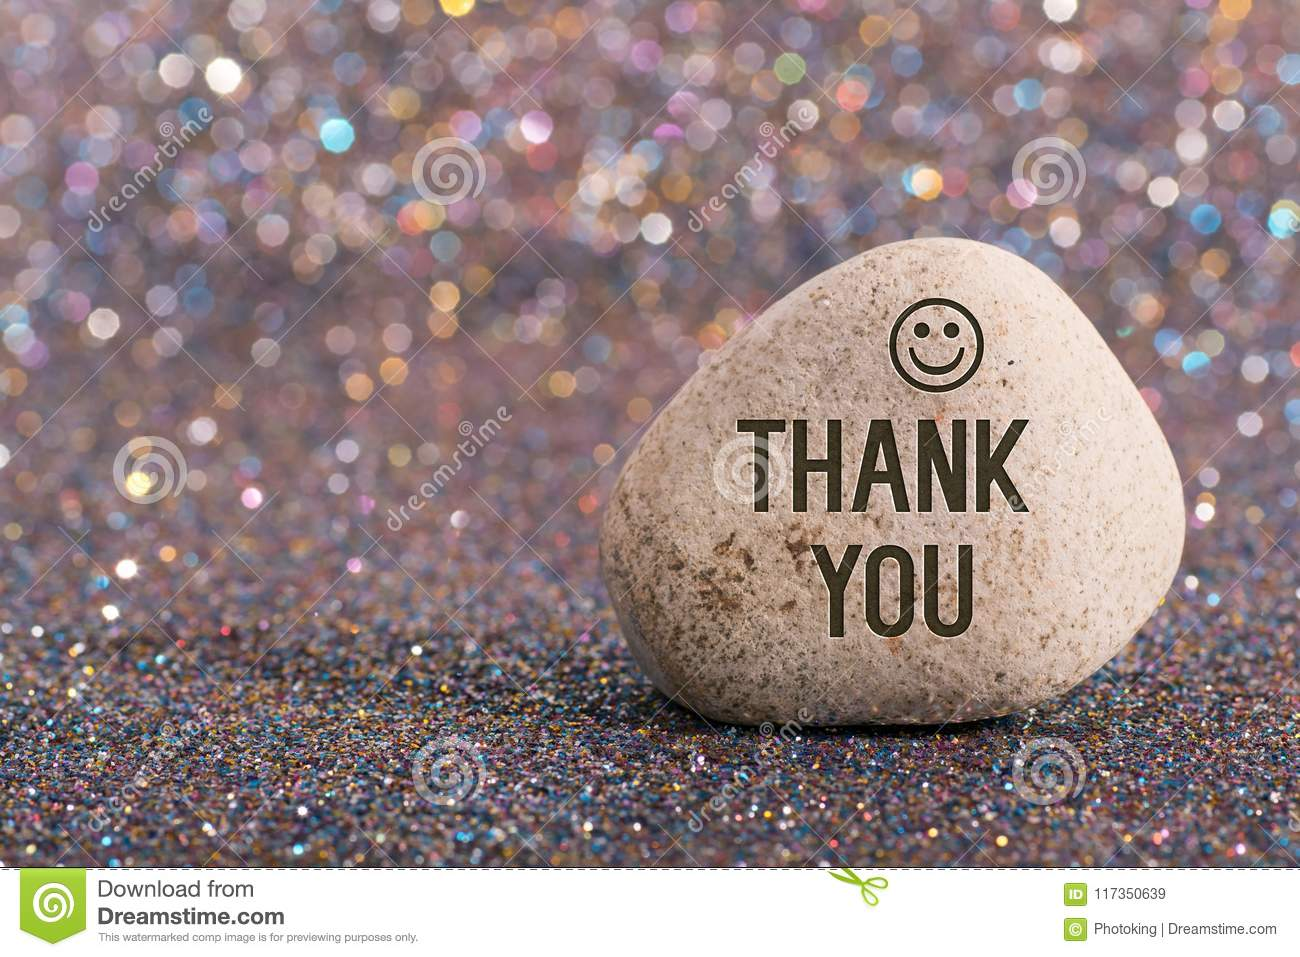 Thank You Stock Images - Download 16,200 Royalty Free Photos | 1300 x 957 jpeg 164kB